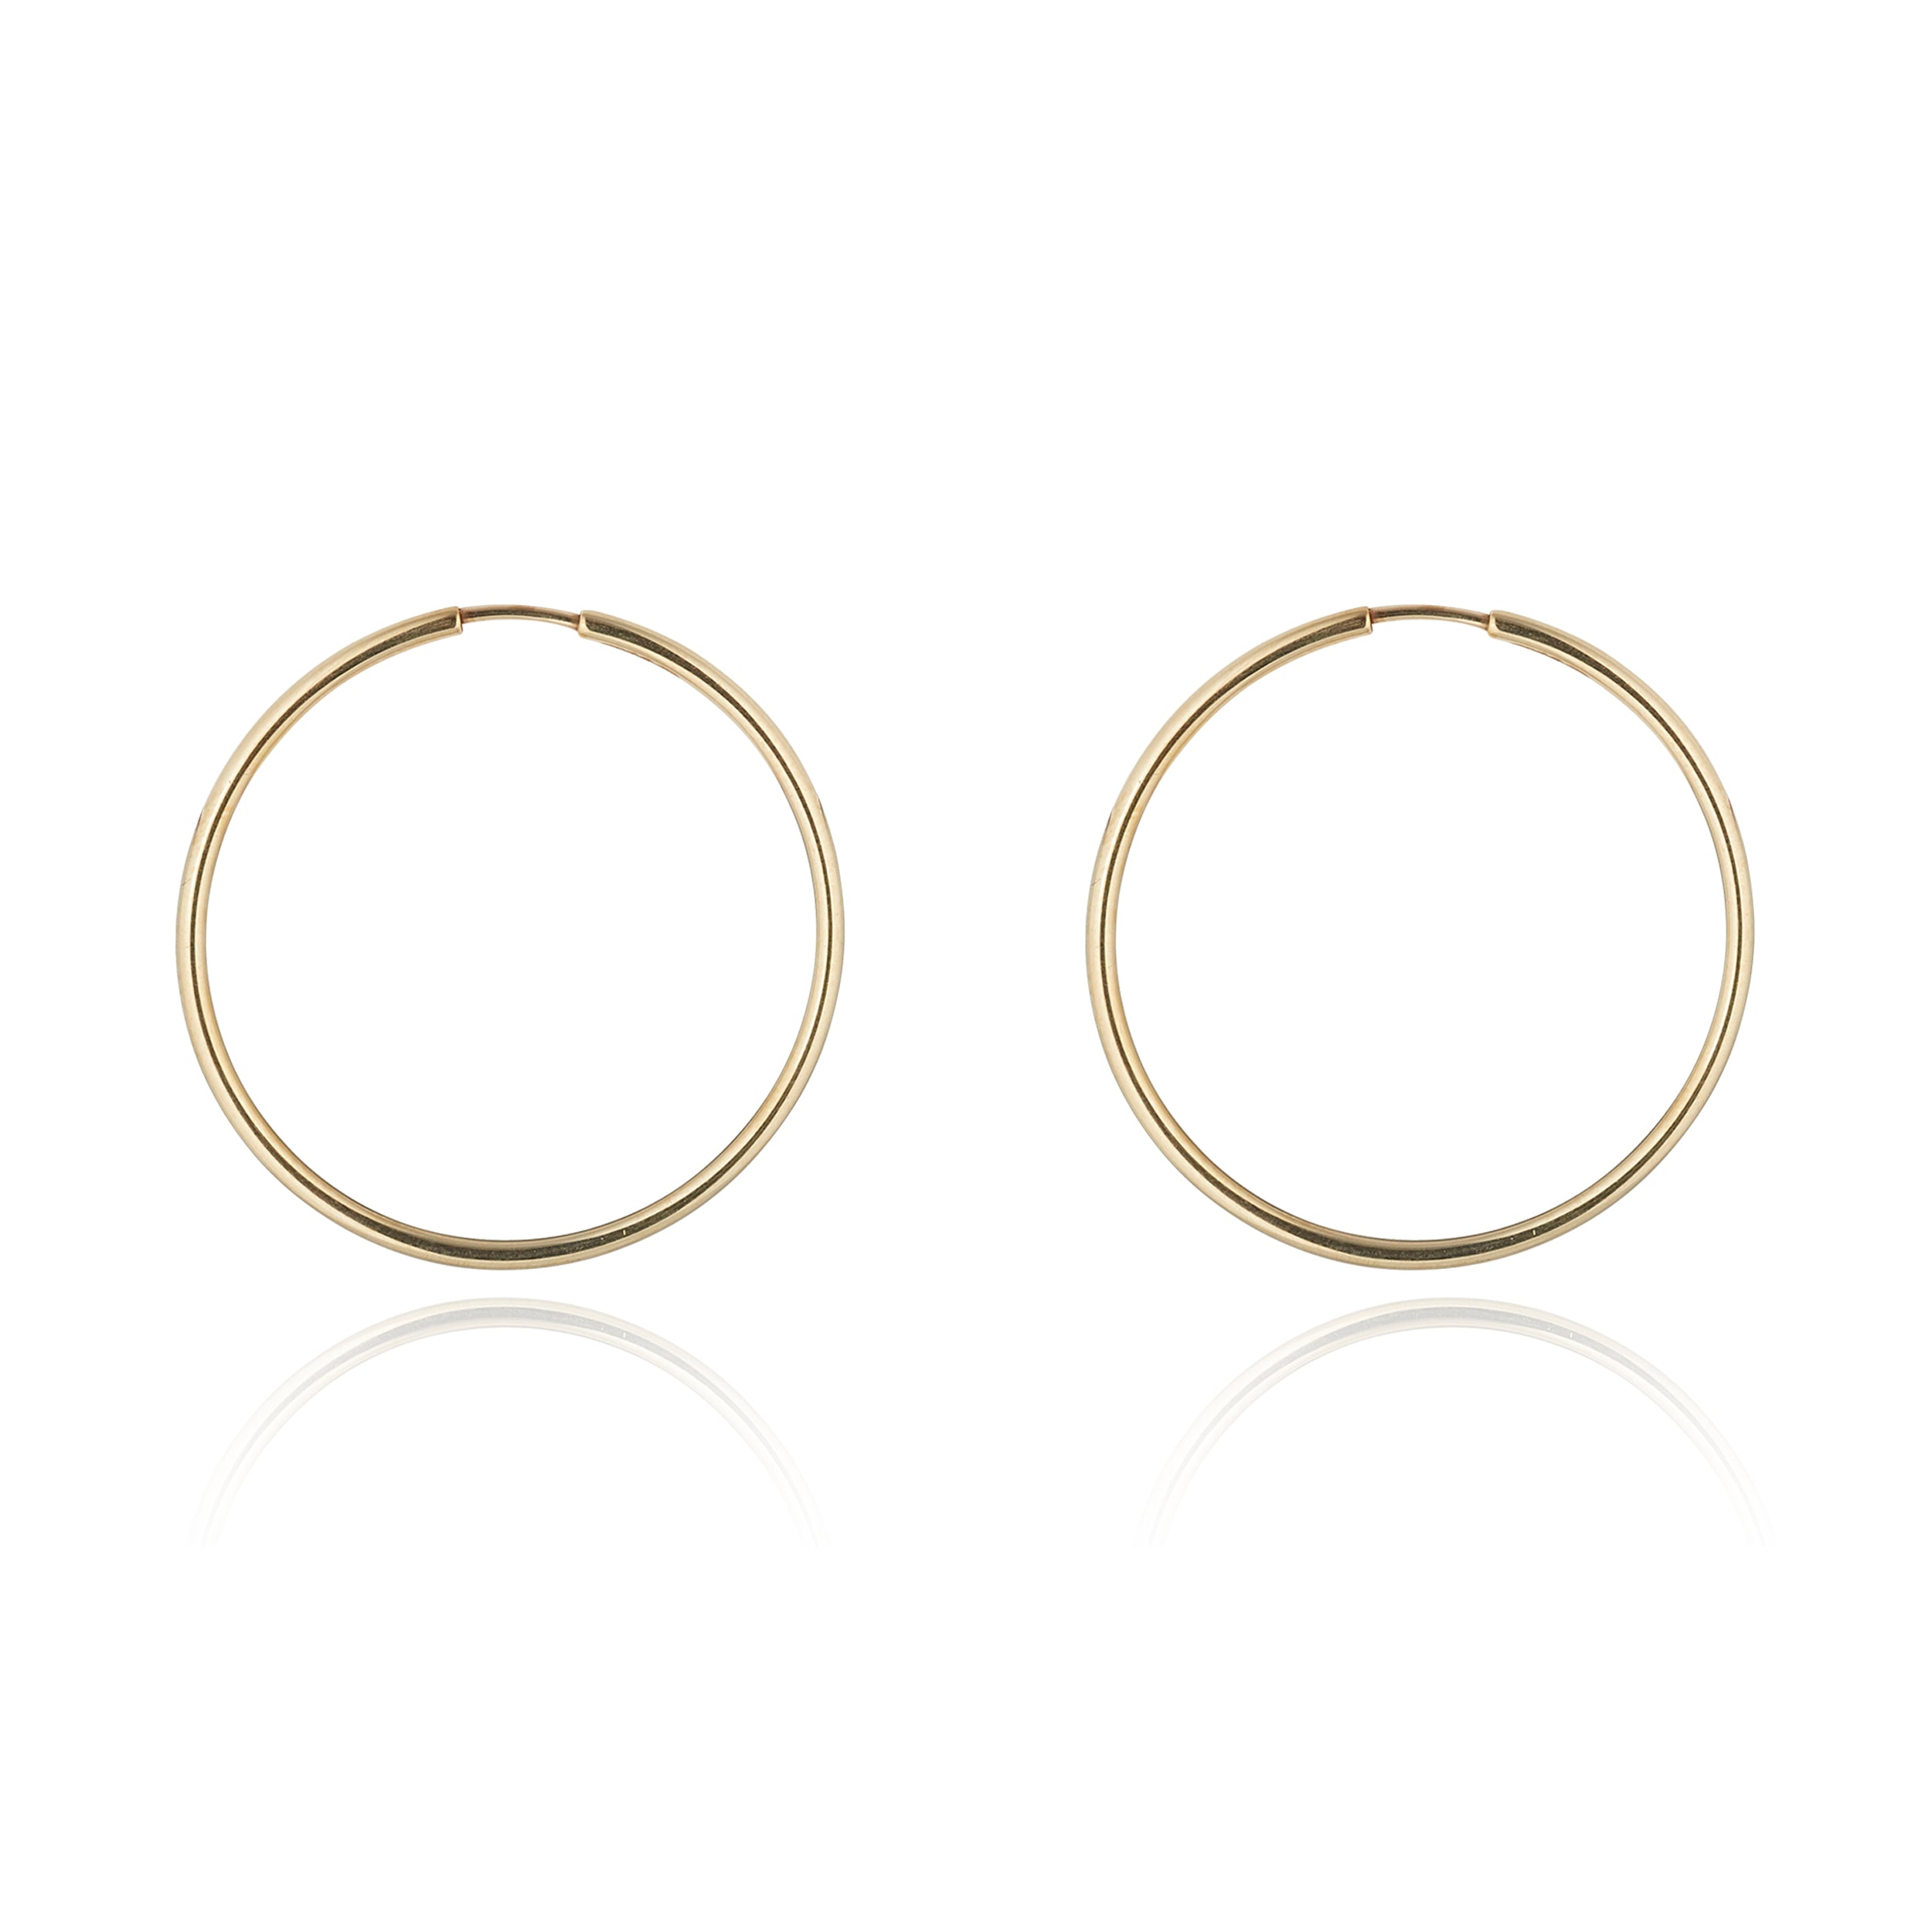 9kt Gold Hoops (Large) - MoMuse Jewellery